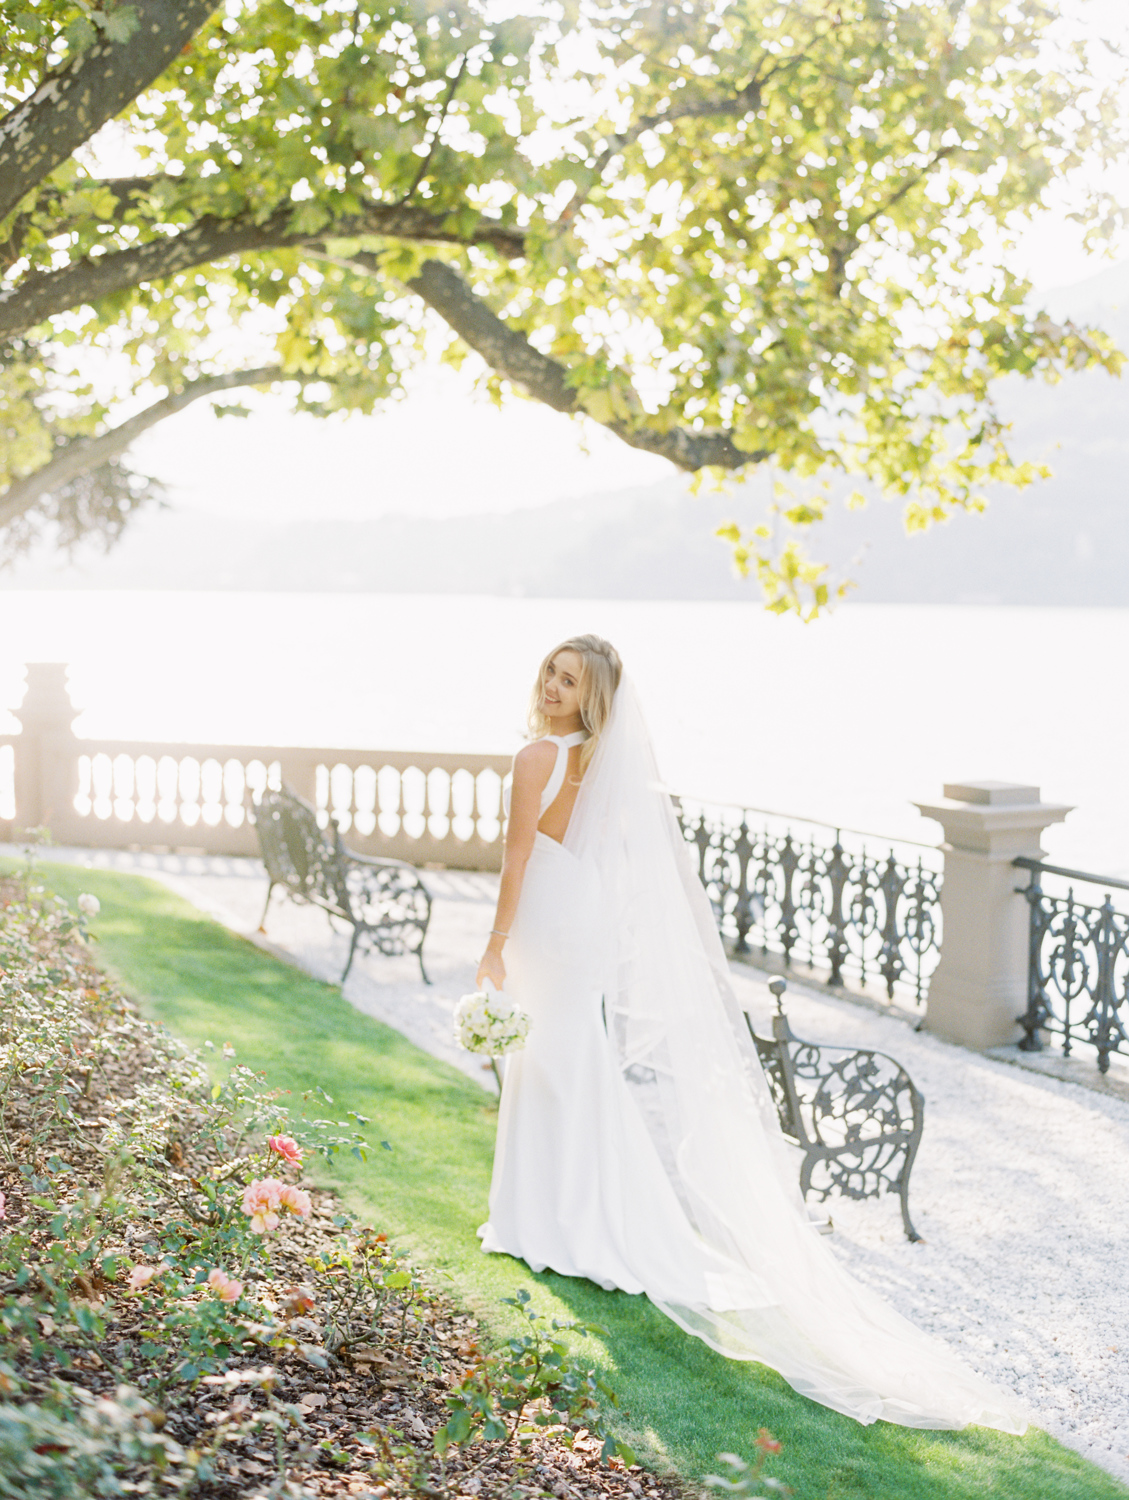 Bride in castadiva resort lago di como Italy